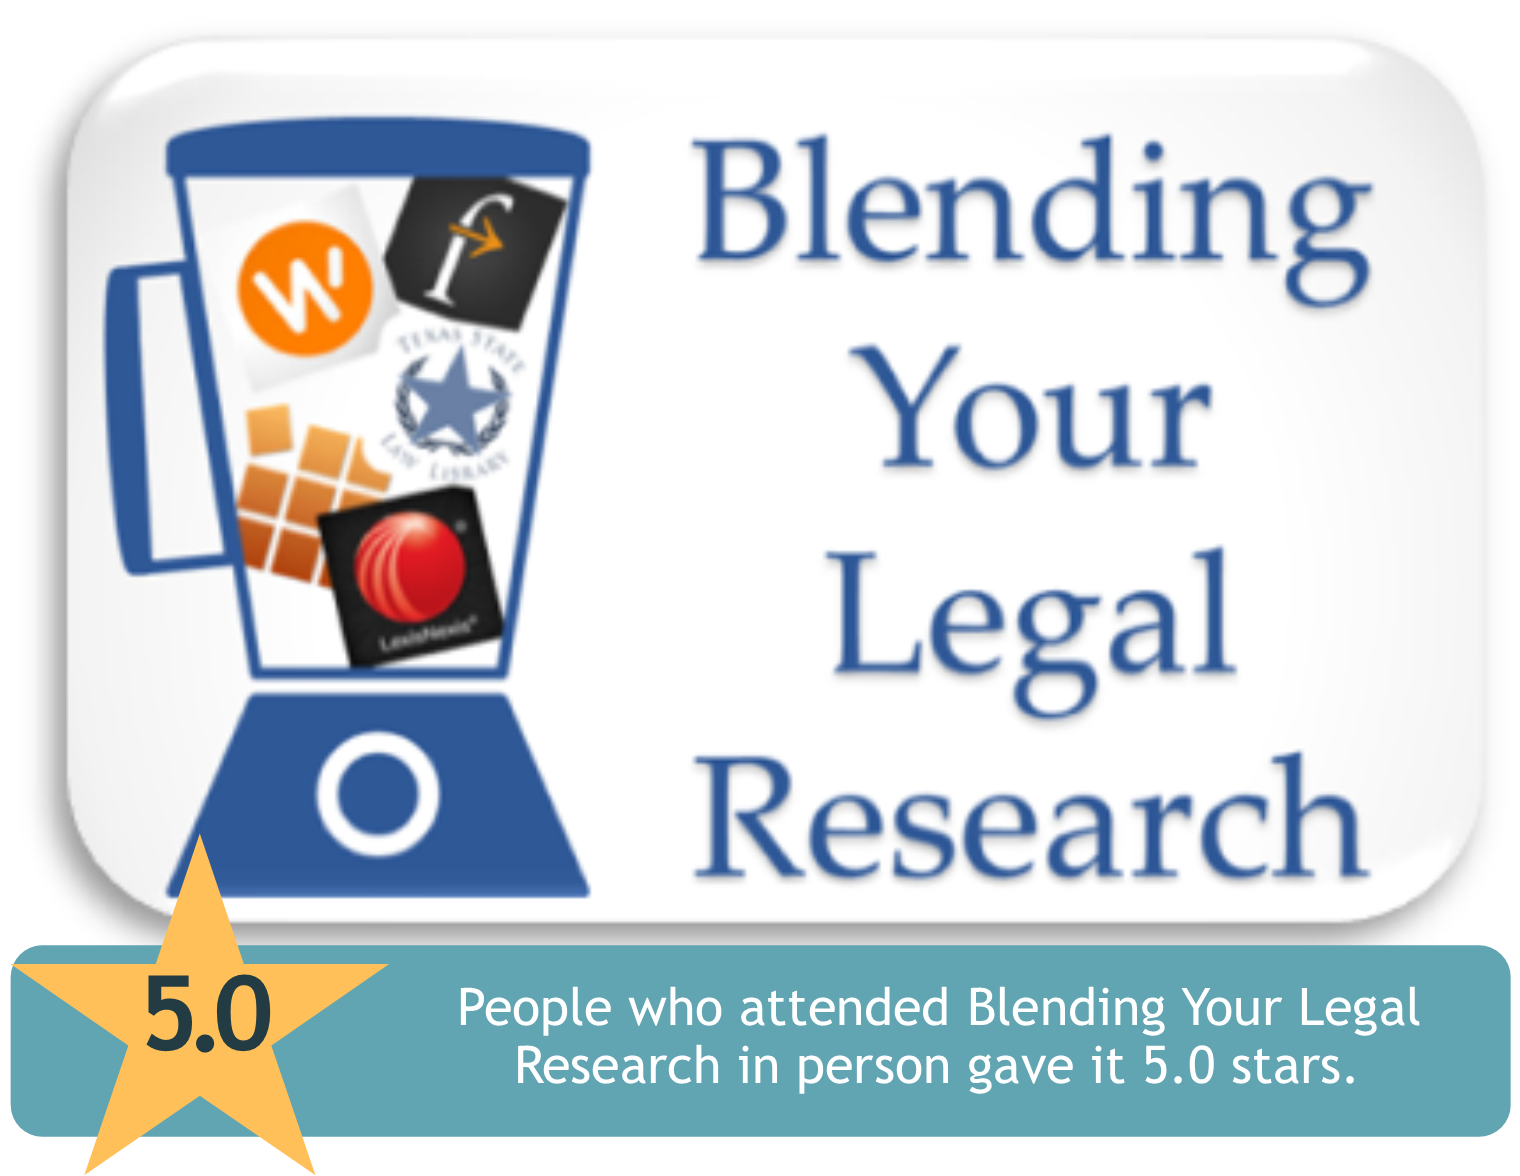 Blending Your Legal Research - People who attended this program in person gave it 5.0 stars.